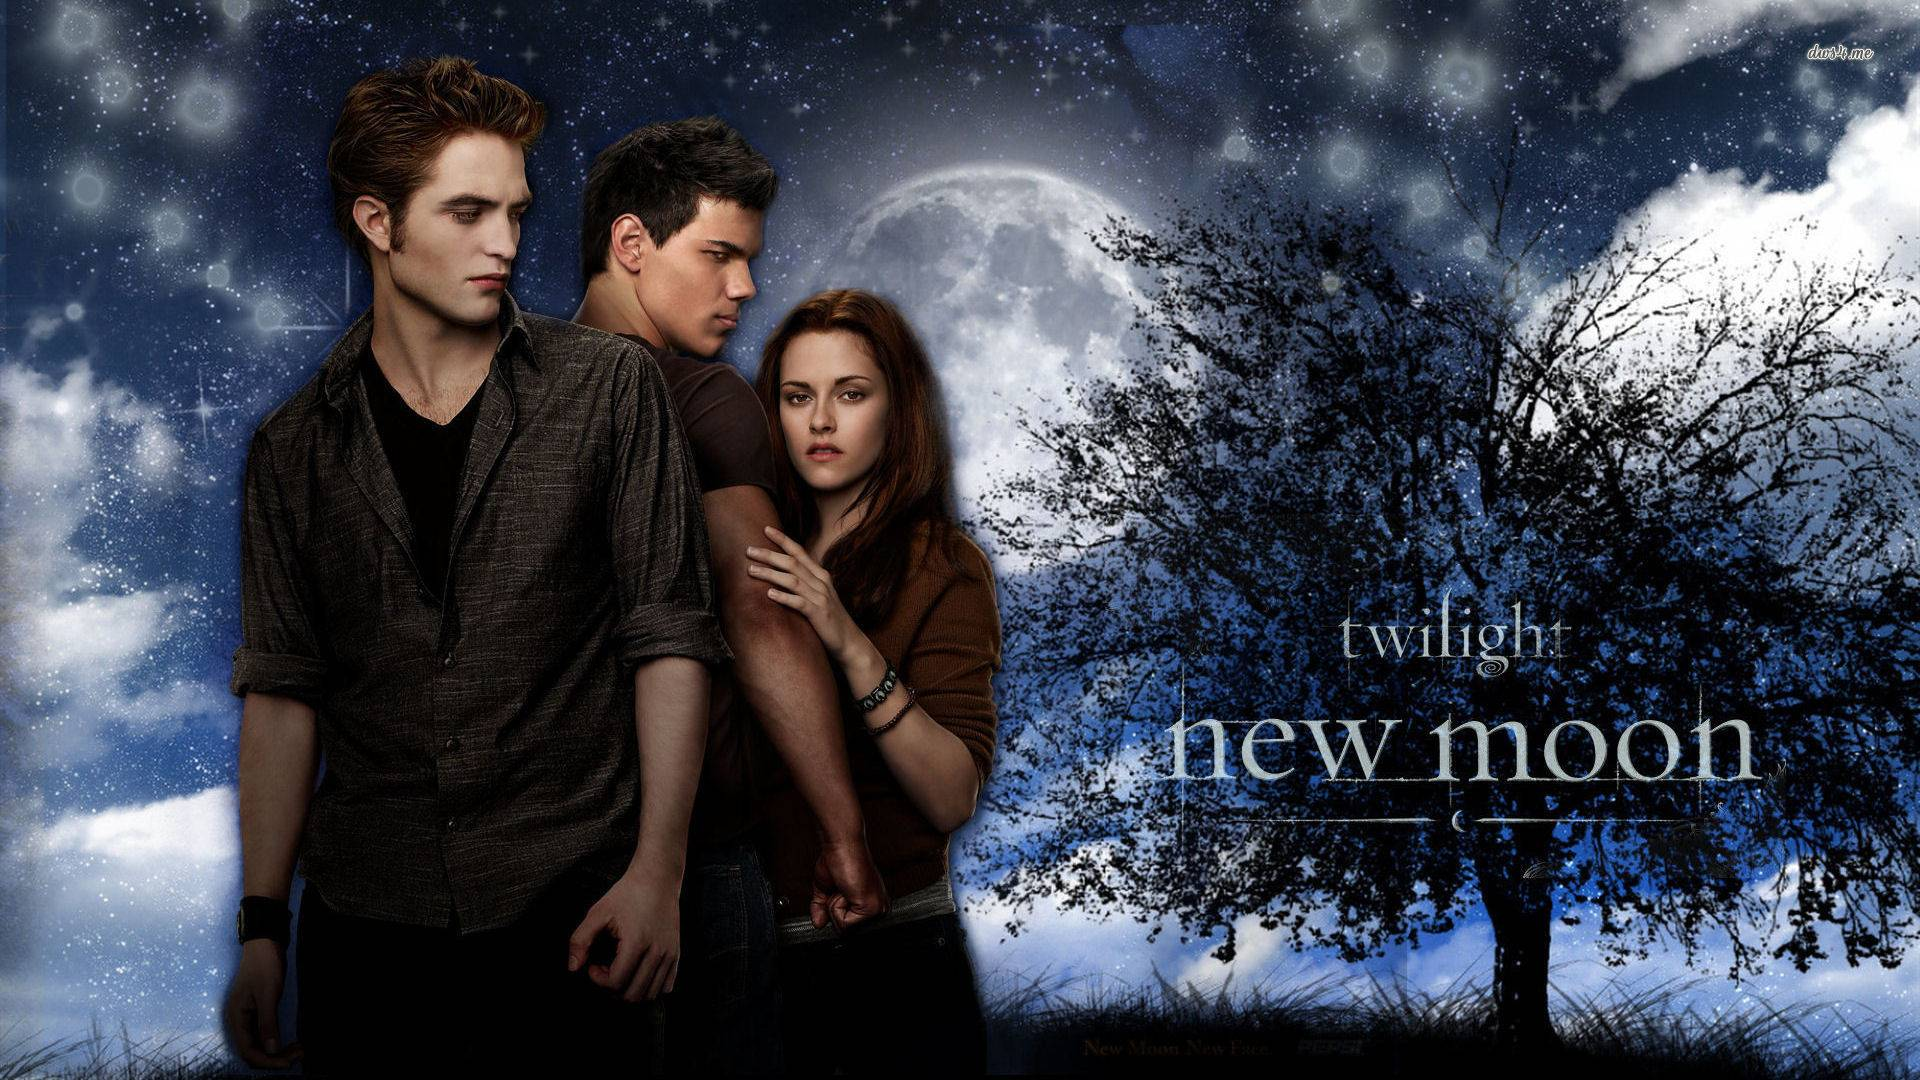 Сага kristen stewart robert pattinson тэйлор лотнер фильмы 1152x864 new moon taylor lautner кристен стюарт роберт